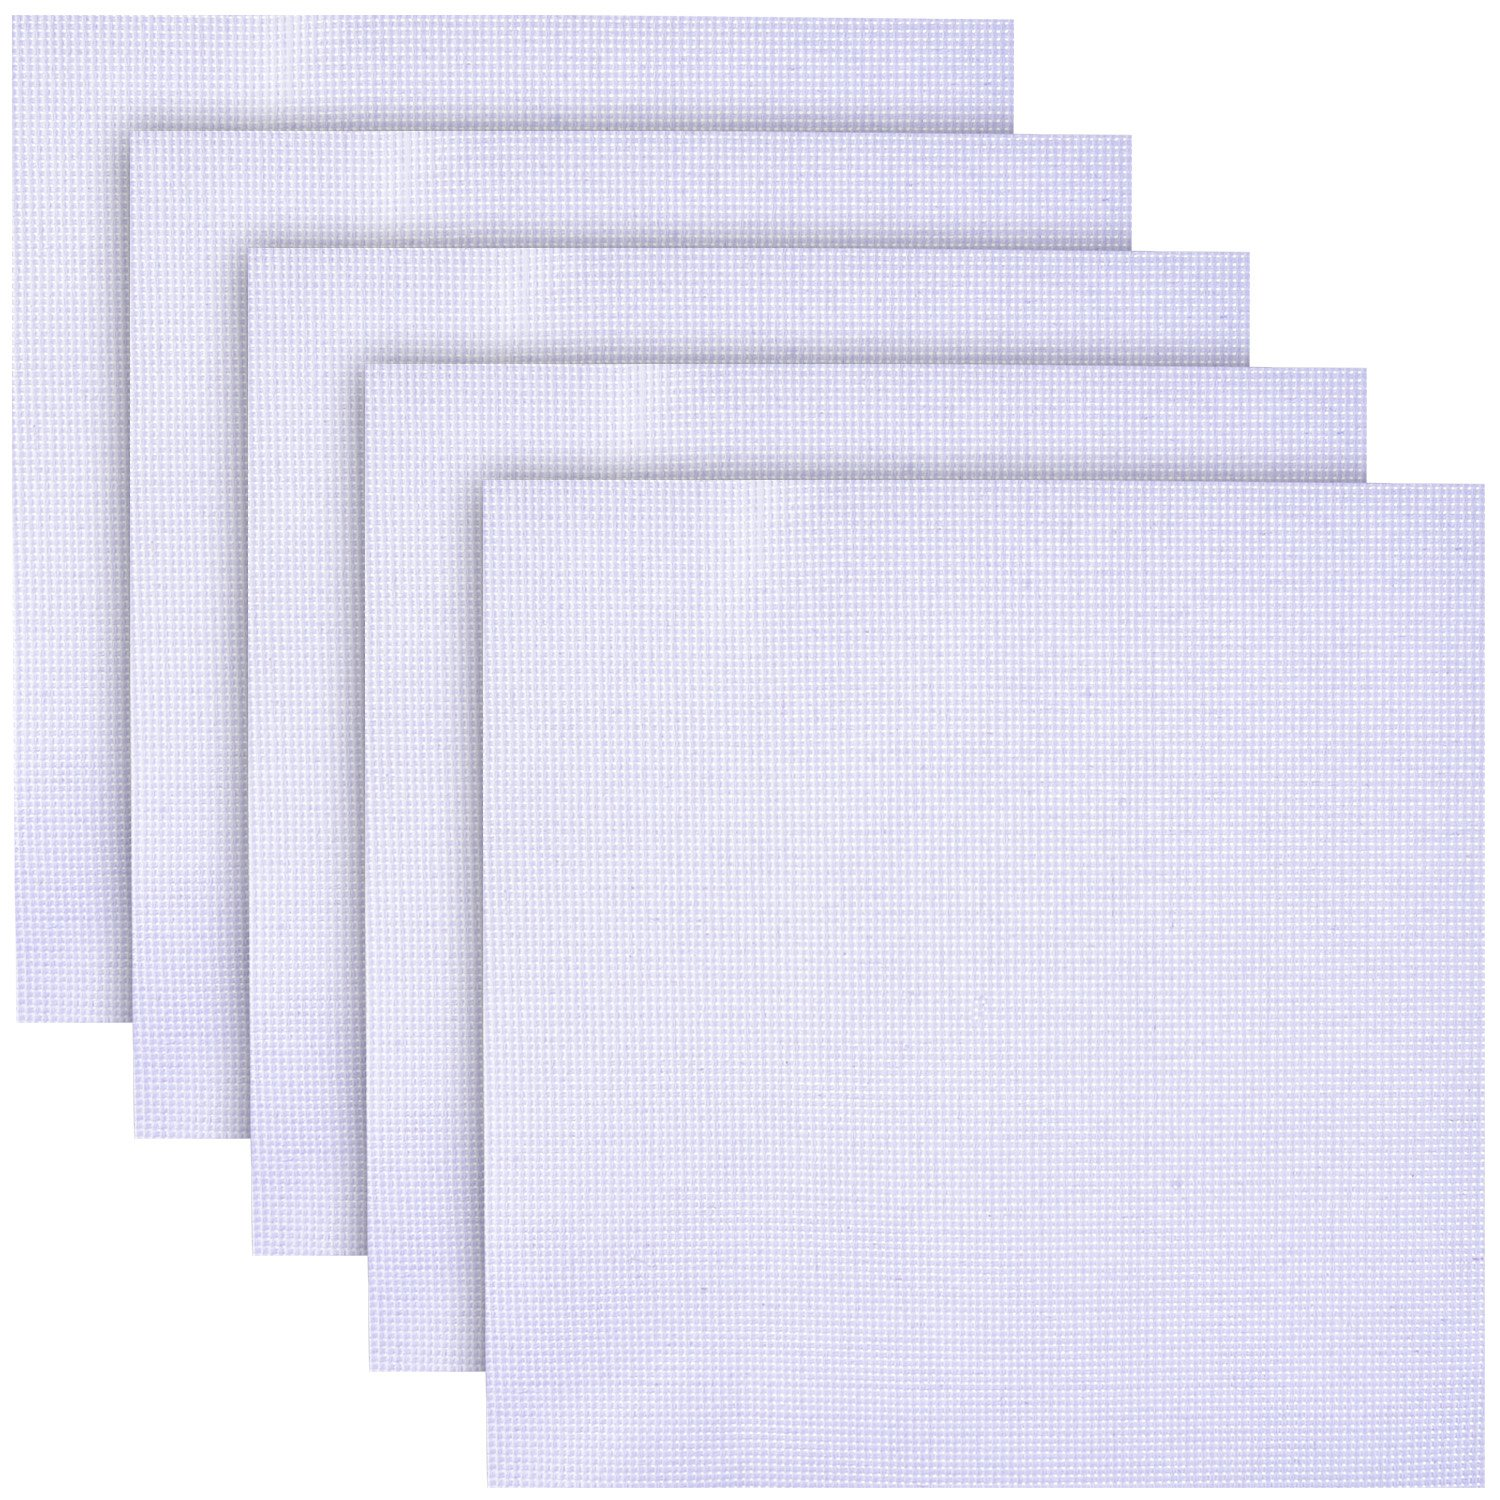 14 Count 14CT White 5pcs Cross Stitch Fabric Eembroidery Fabric Aida Cloth Cross Stitch Supplies Fabric Squares 12 x 12 inch